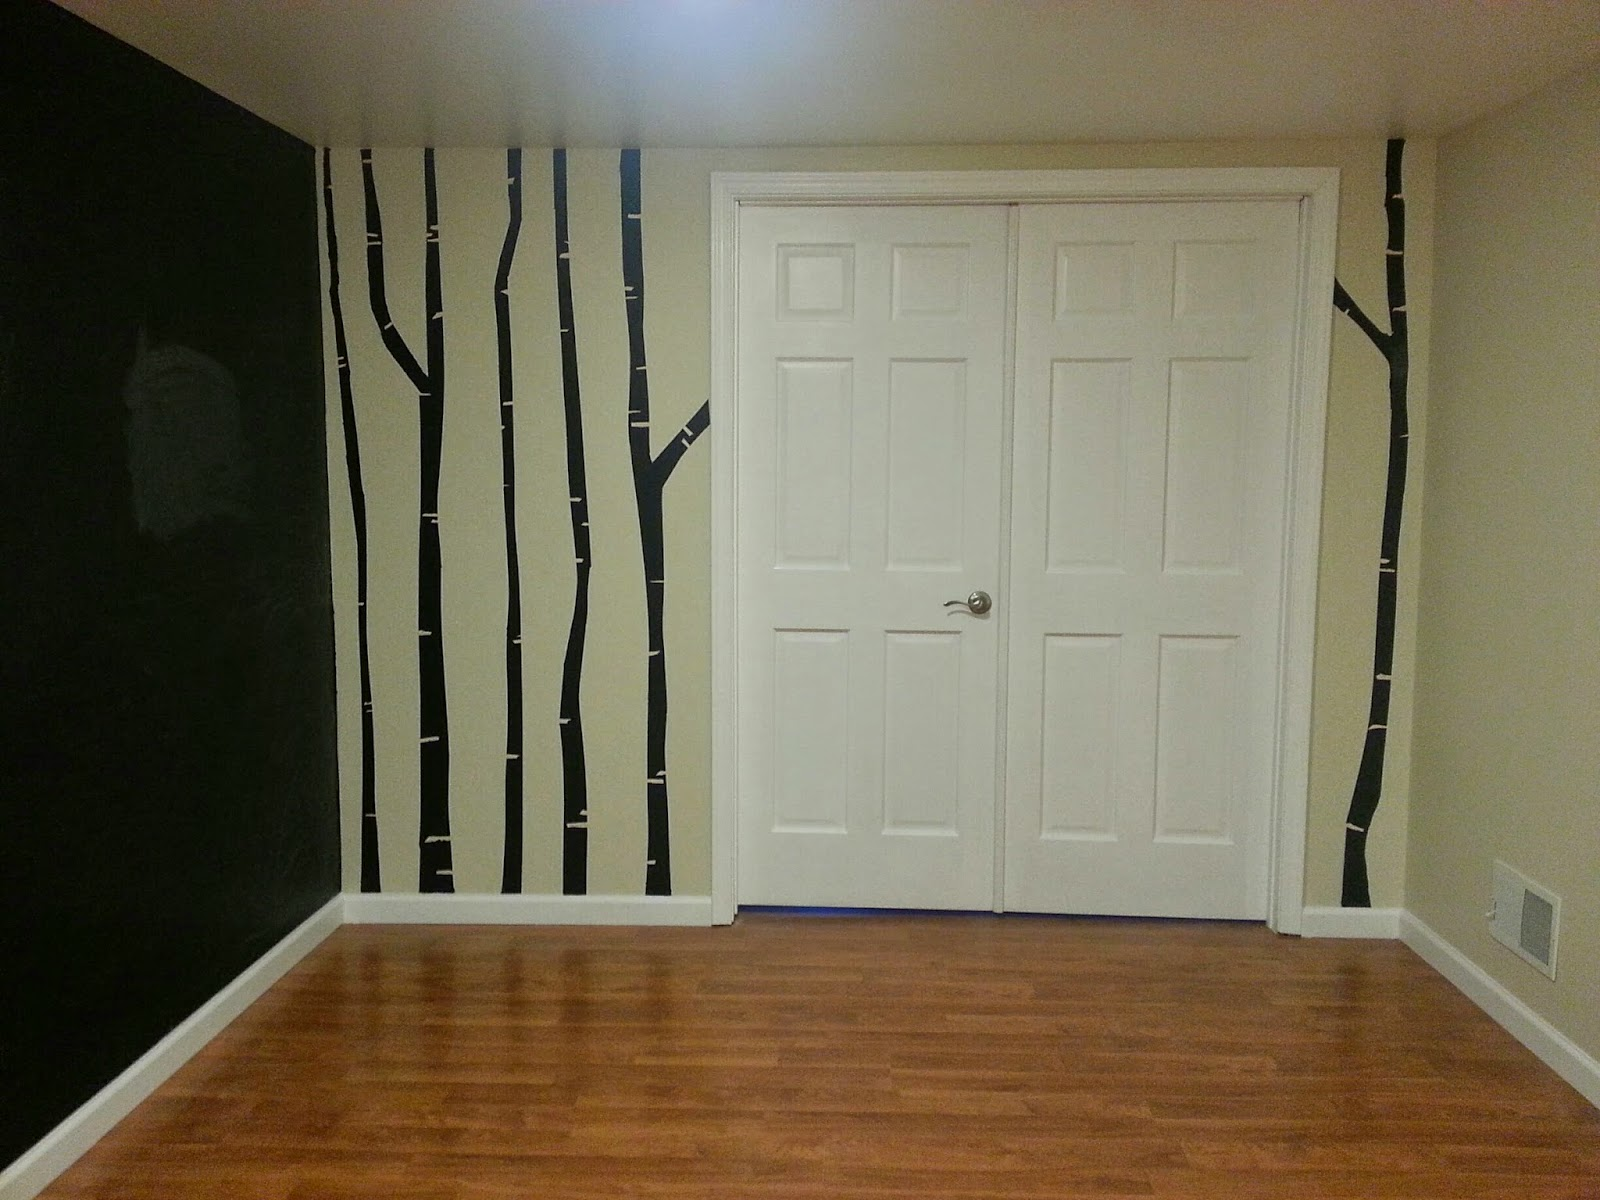 Diy birch tree mural using lullaby paints lullaby paints for Diy birch tree mural